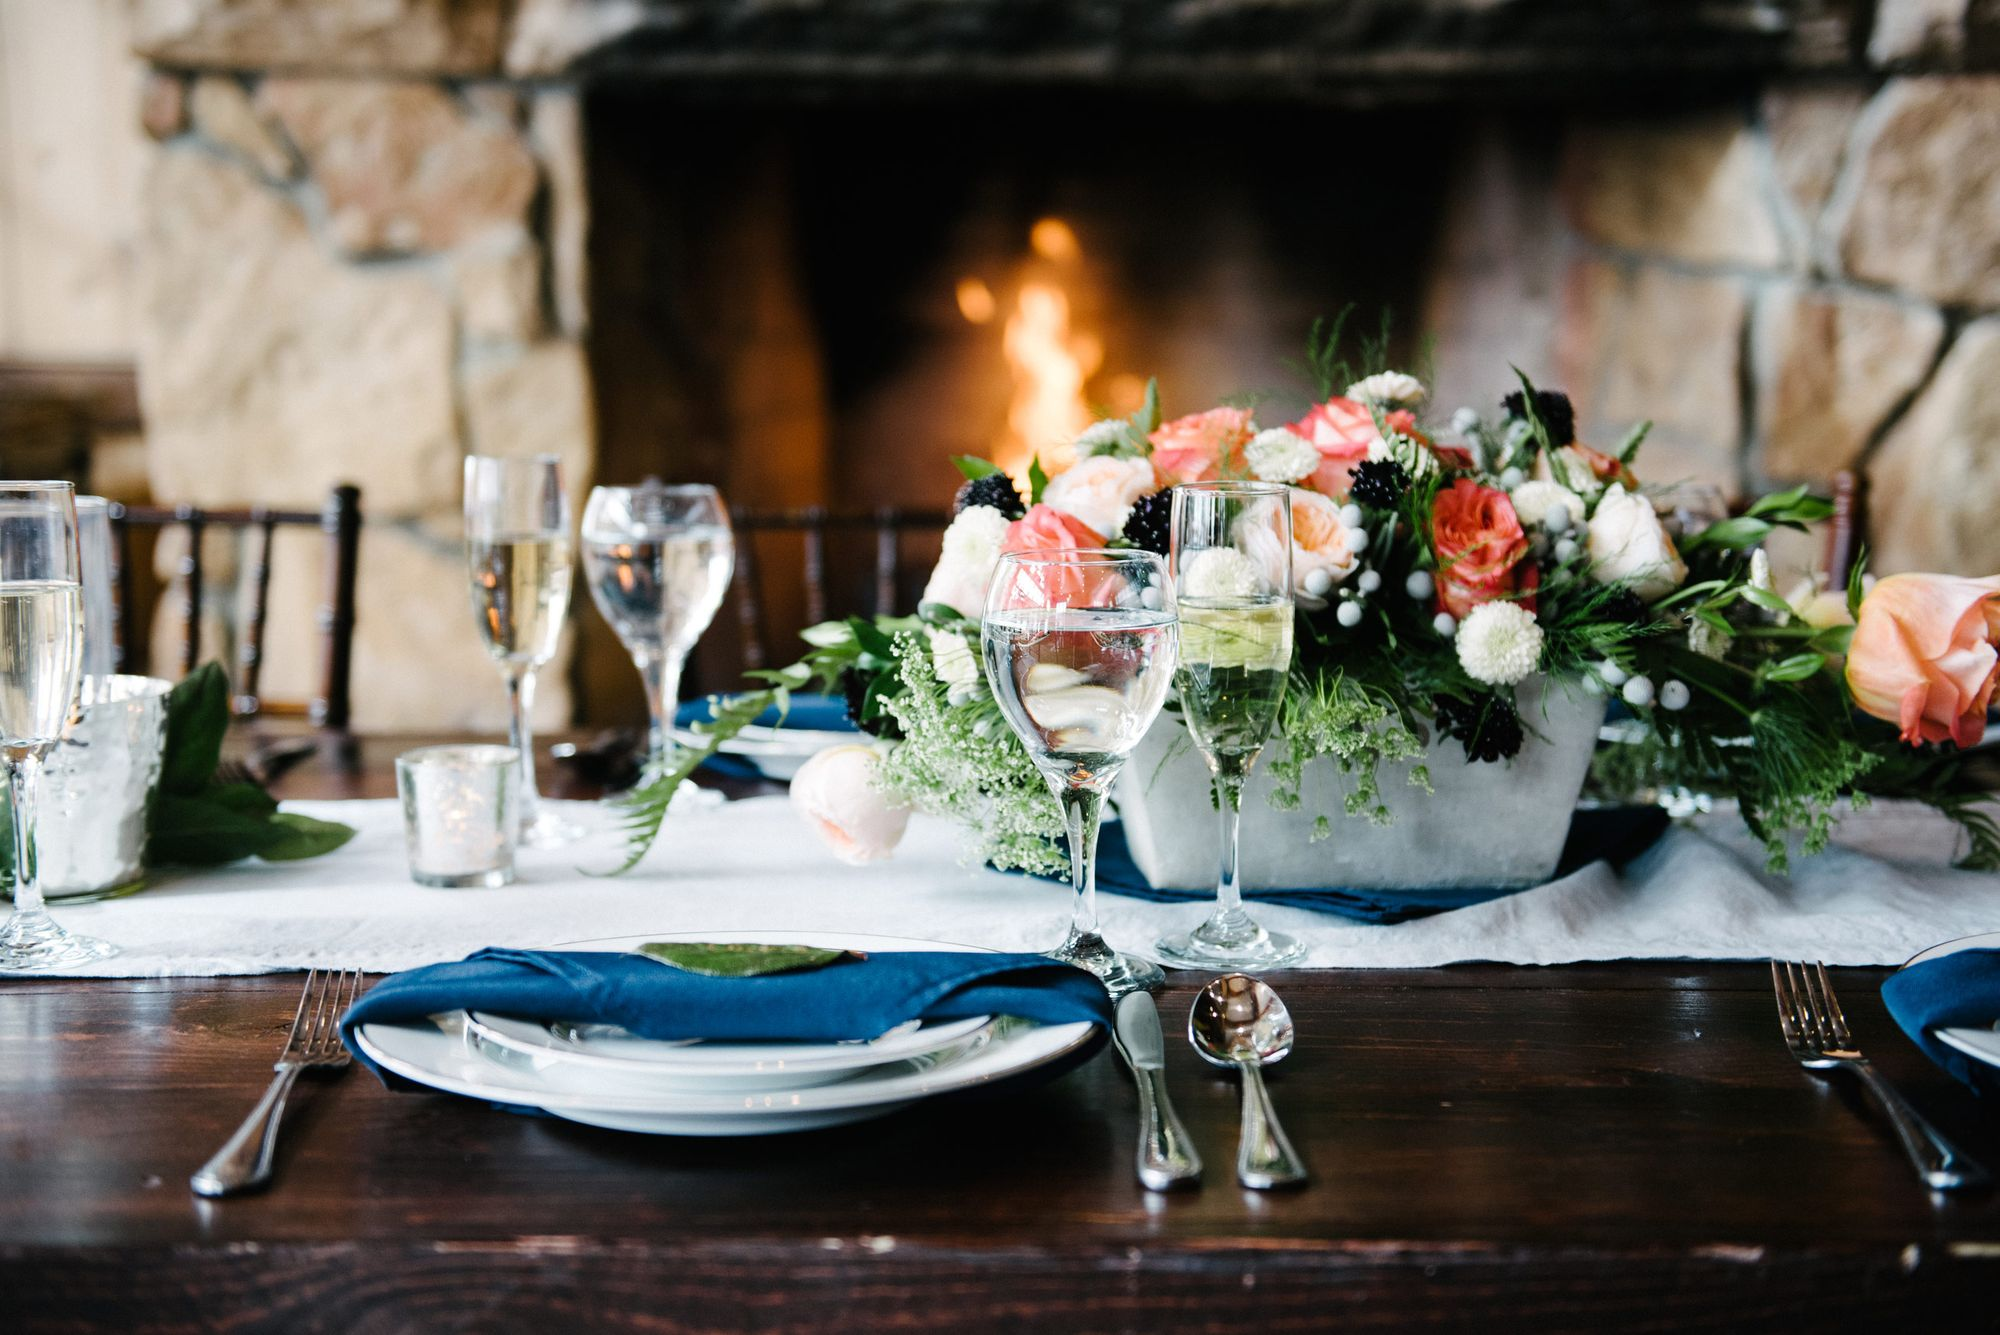 Rocky_Mountain_Bride_Winter_Elopement_Deer_Valley_Empire_Lodge_Crackling_Fire_Coral_Floral_Centerpiece.jpg